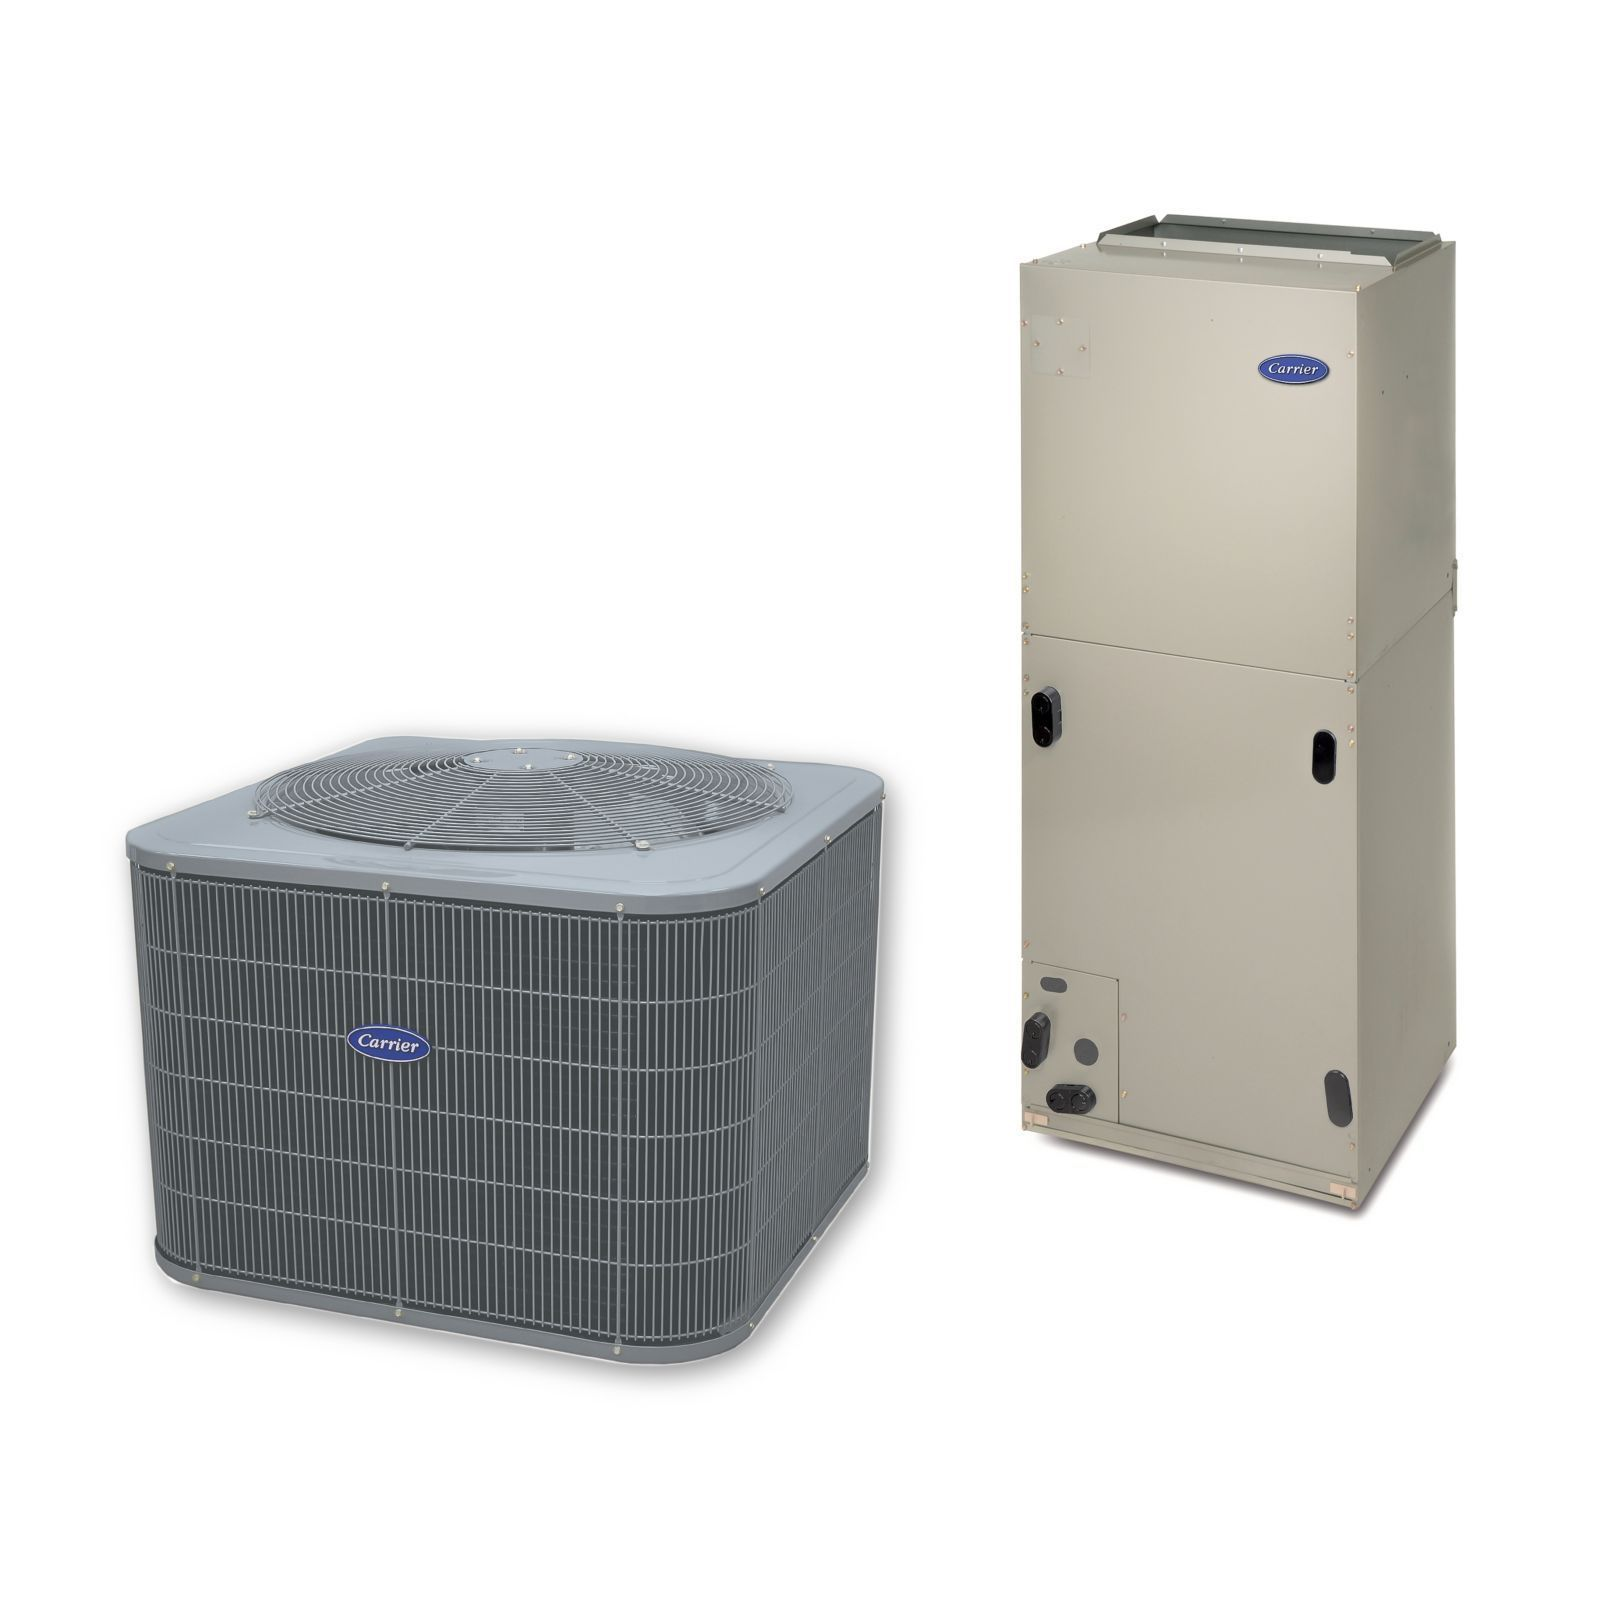 Carrier Performance 4 Ton 16 Seer Heat Pump System, Carrier Heat Pump - DIY Comfort Depot